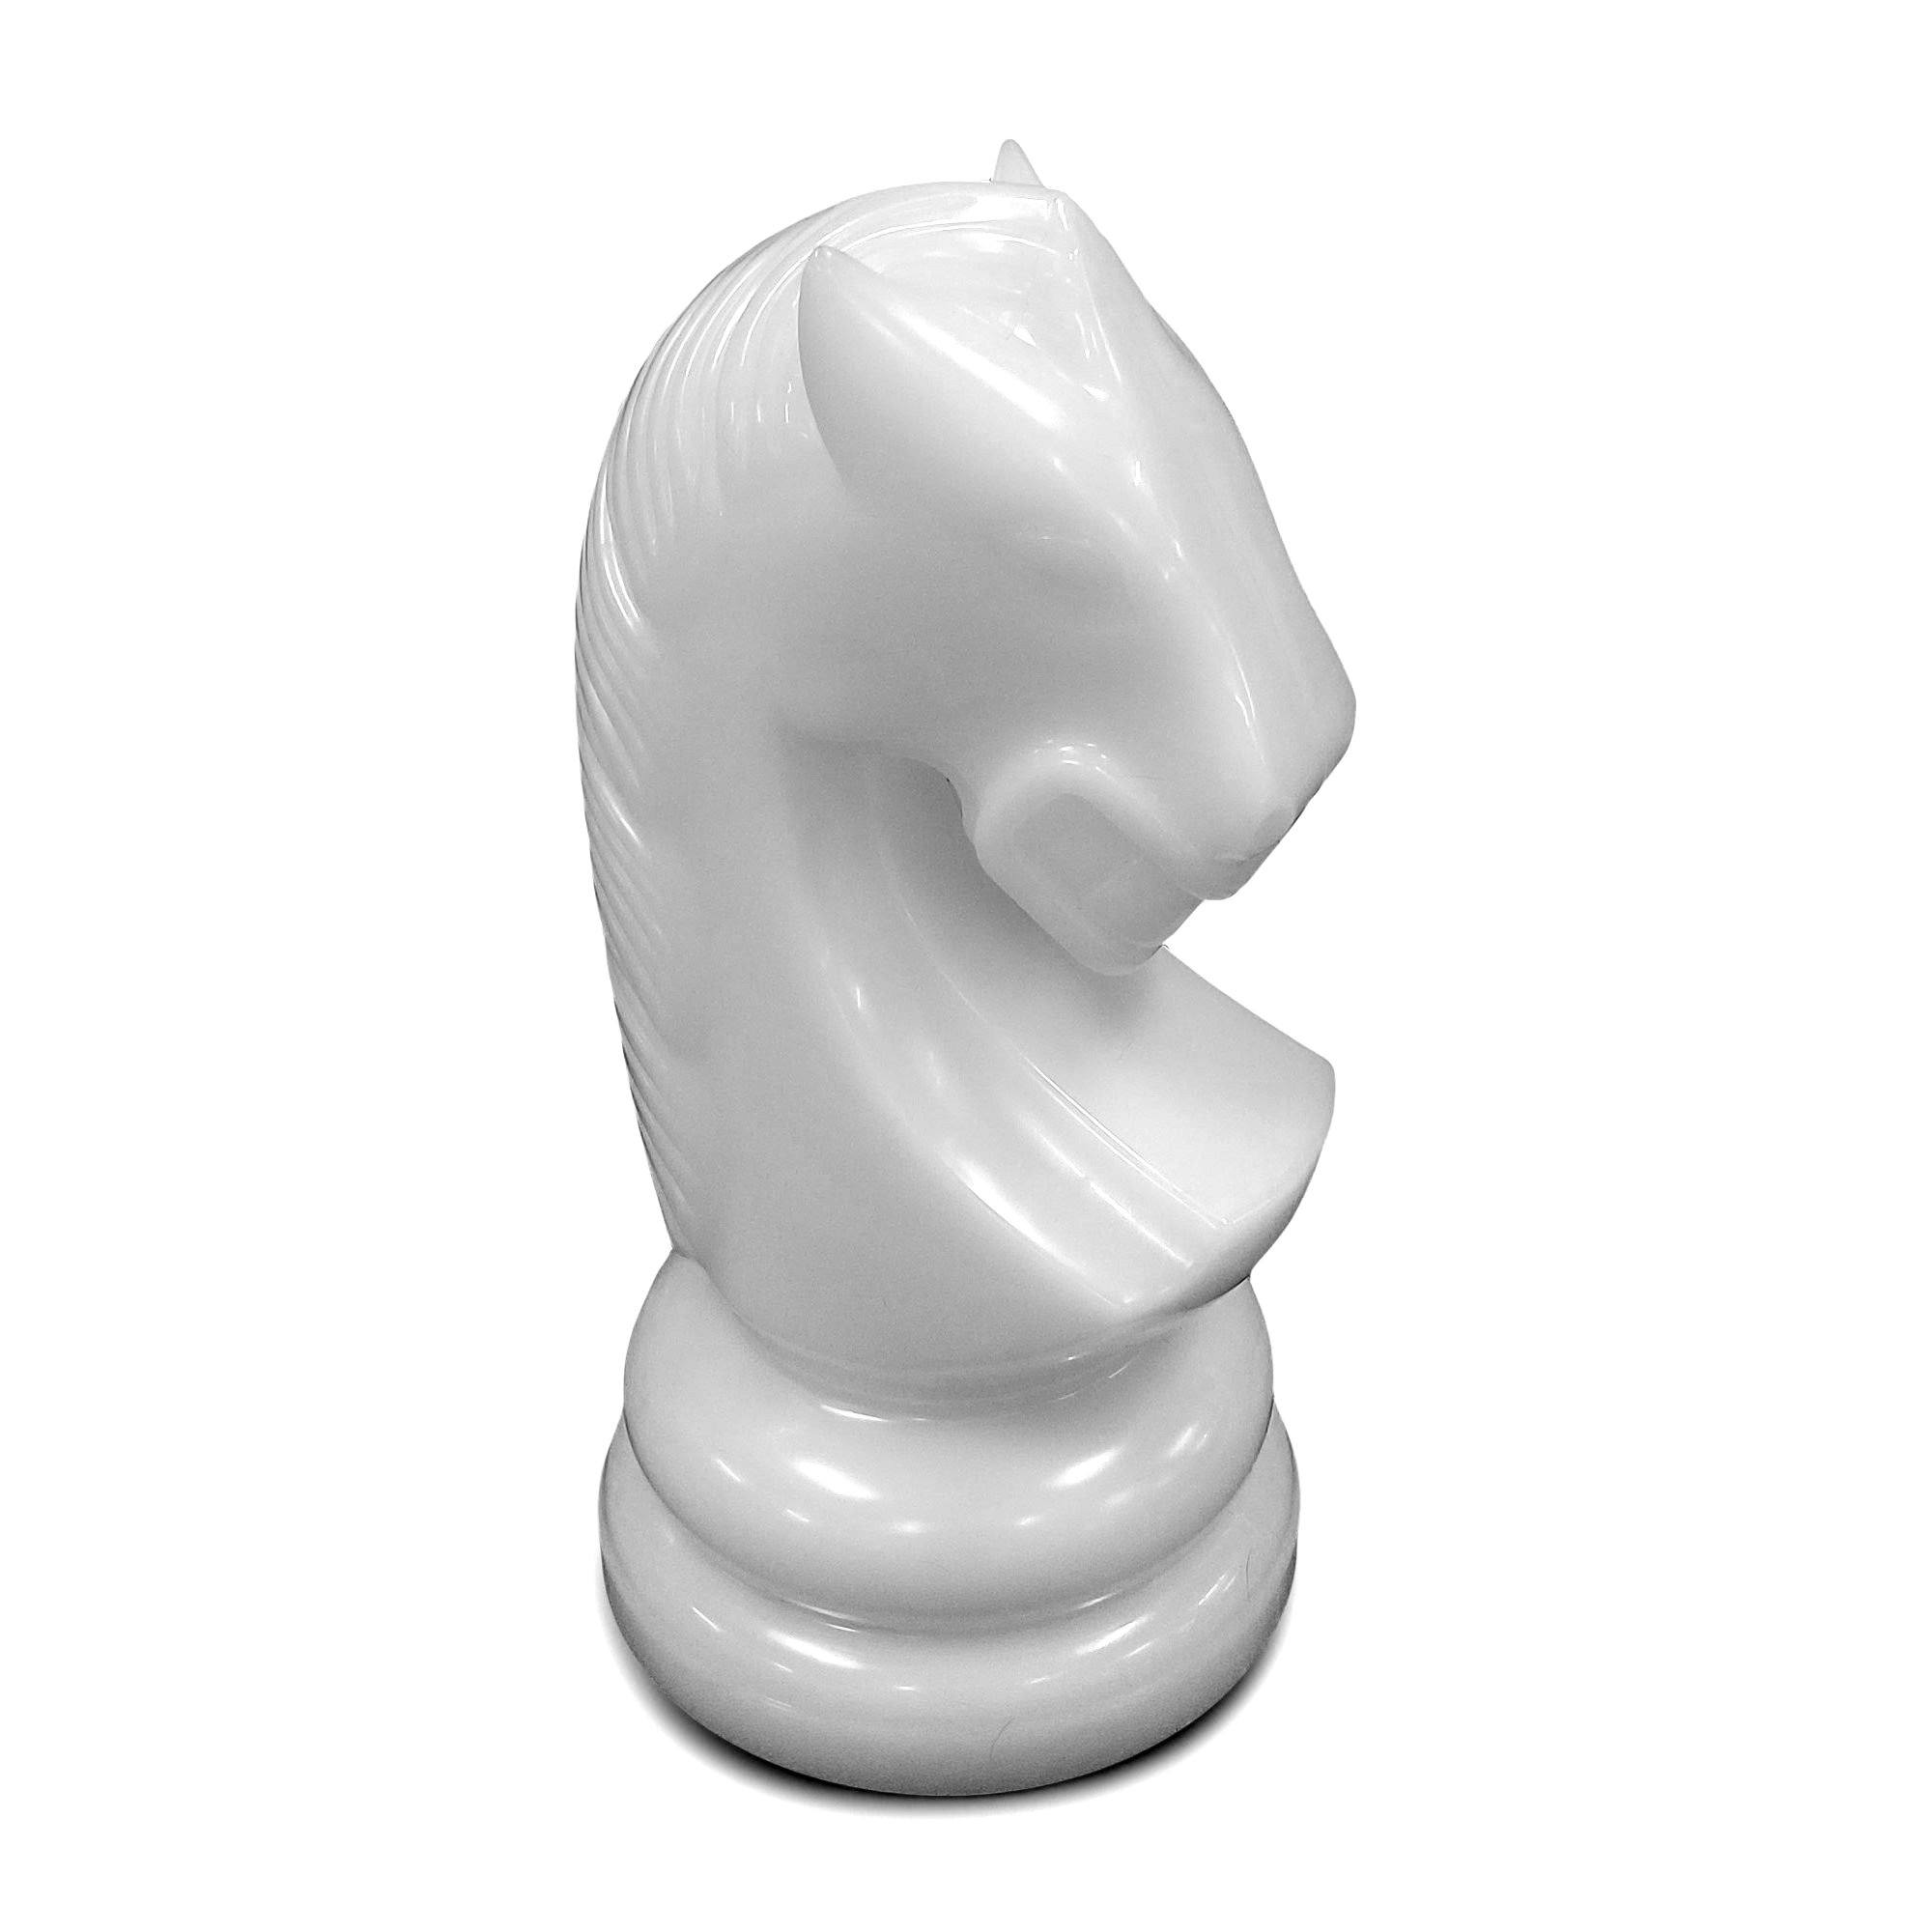 MegaChess 23 Inch White Perfect Knight Giant Chess Piece | Default Title | MegaChess.com